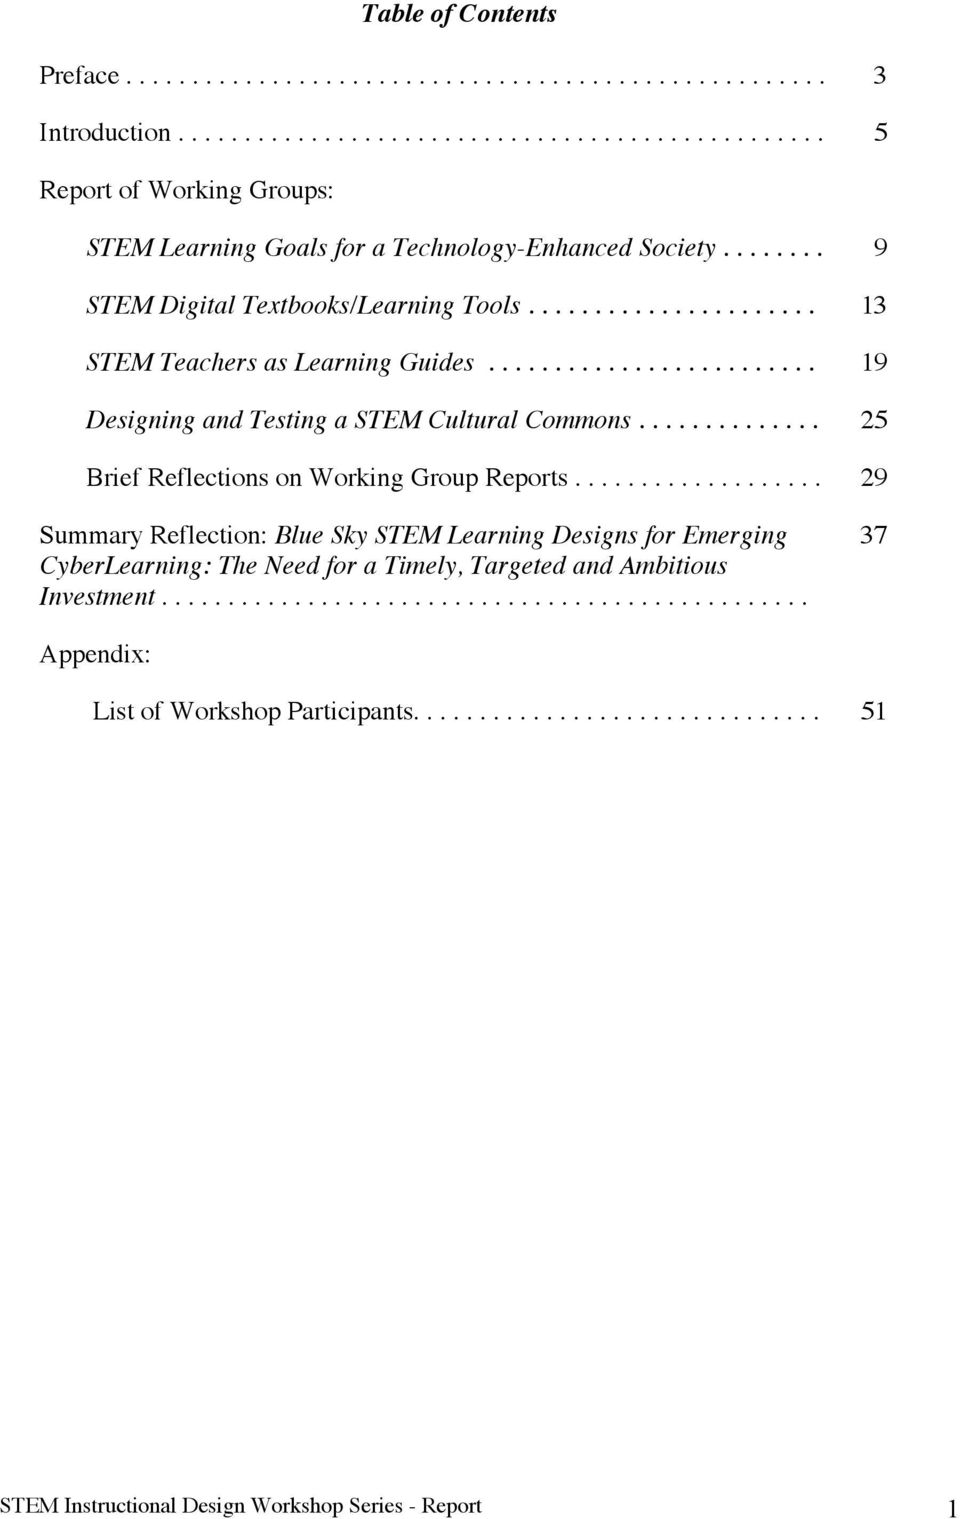 ............. 25 Brief Reflections on Working Group Reports................... 29 Summary Reflection: Blue Sky STEM Learning Designs for Emerging CyberLearning: The Need for a Timely, Targeted and Ambitious Investment.